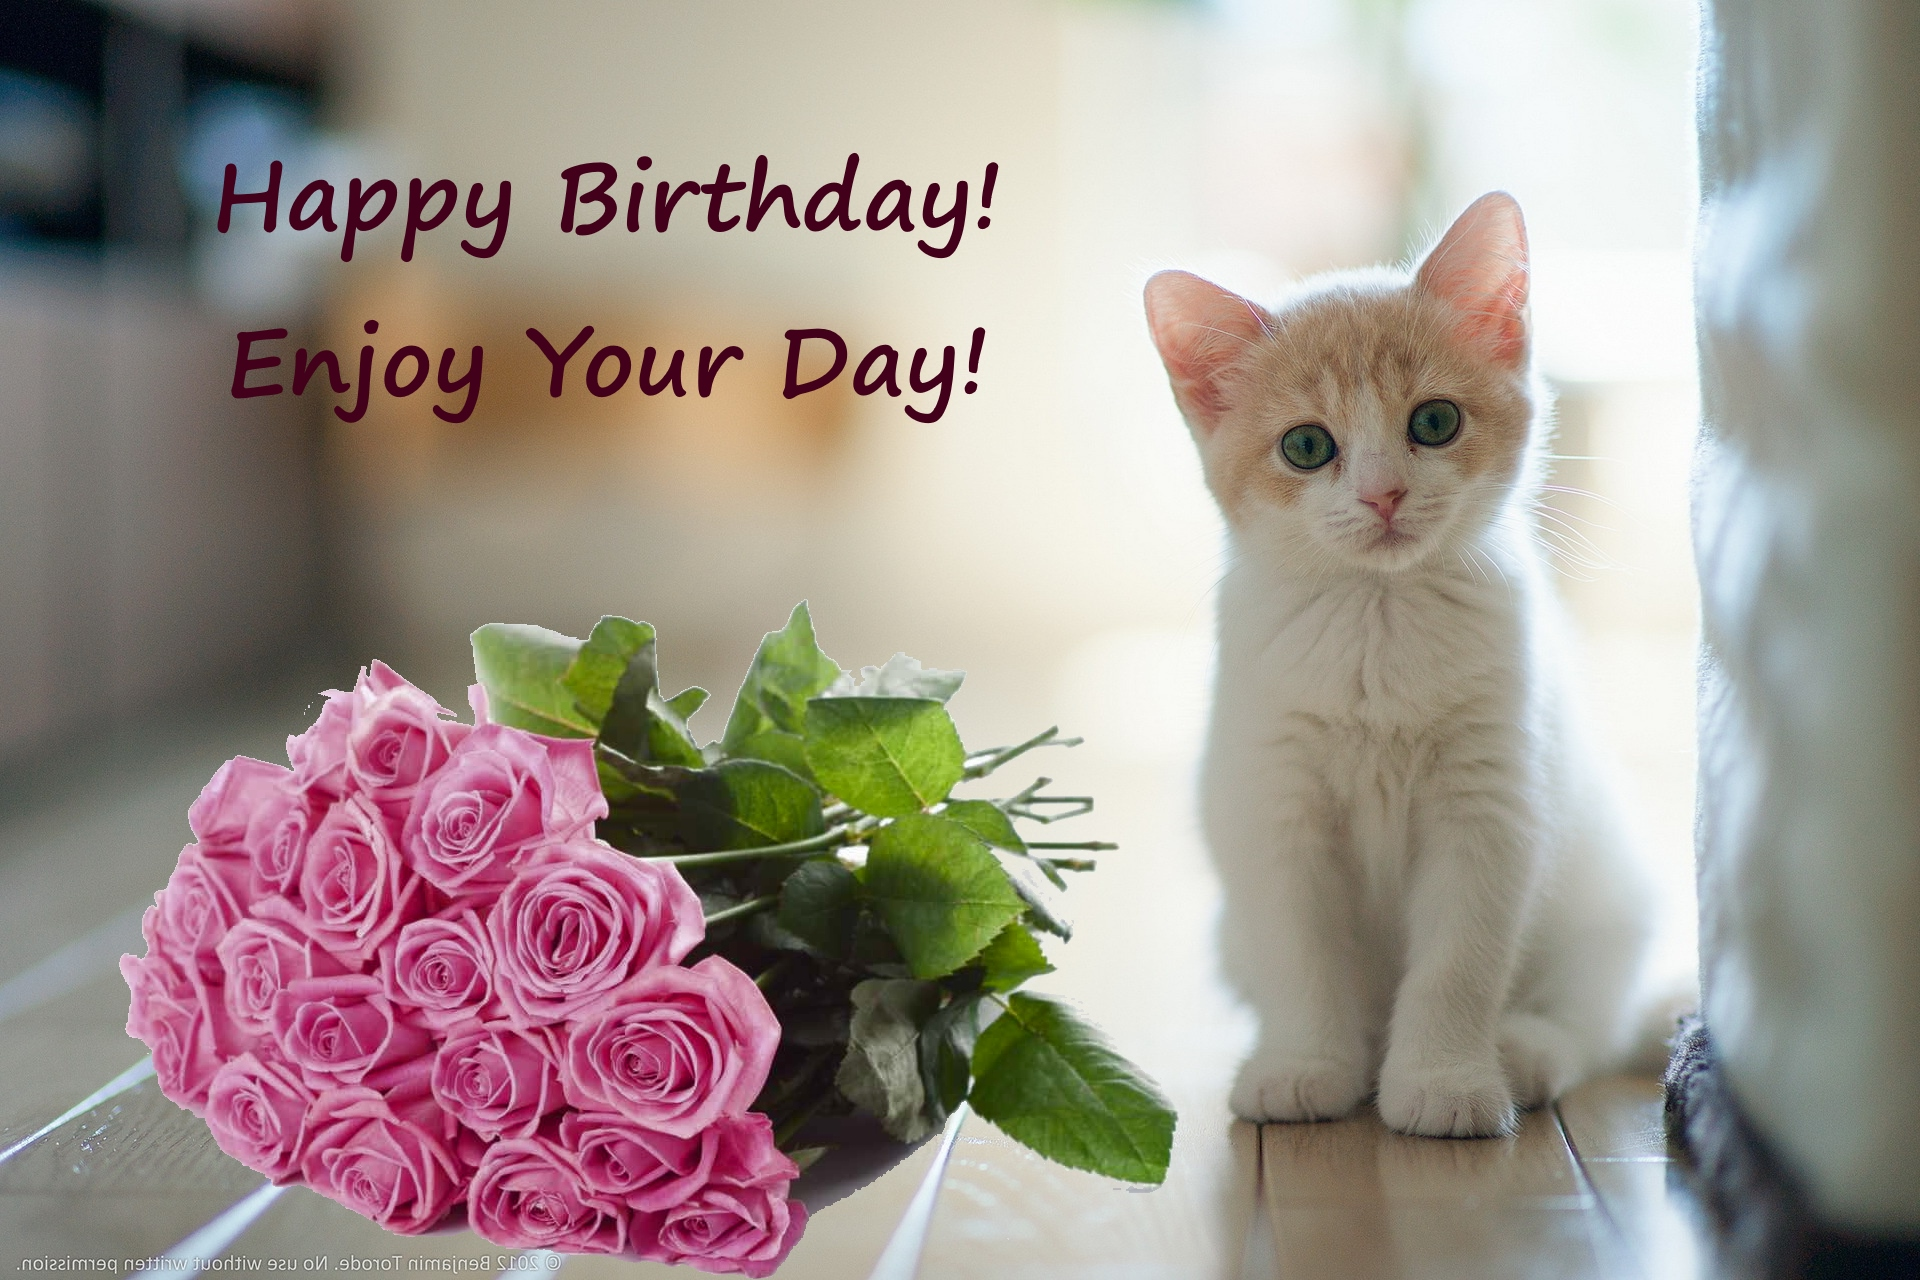 Happy birthday with kitten and flowers pink red roses happy happy birthday with kitten and flowers pink red roses izmirmasajfo Image collections